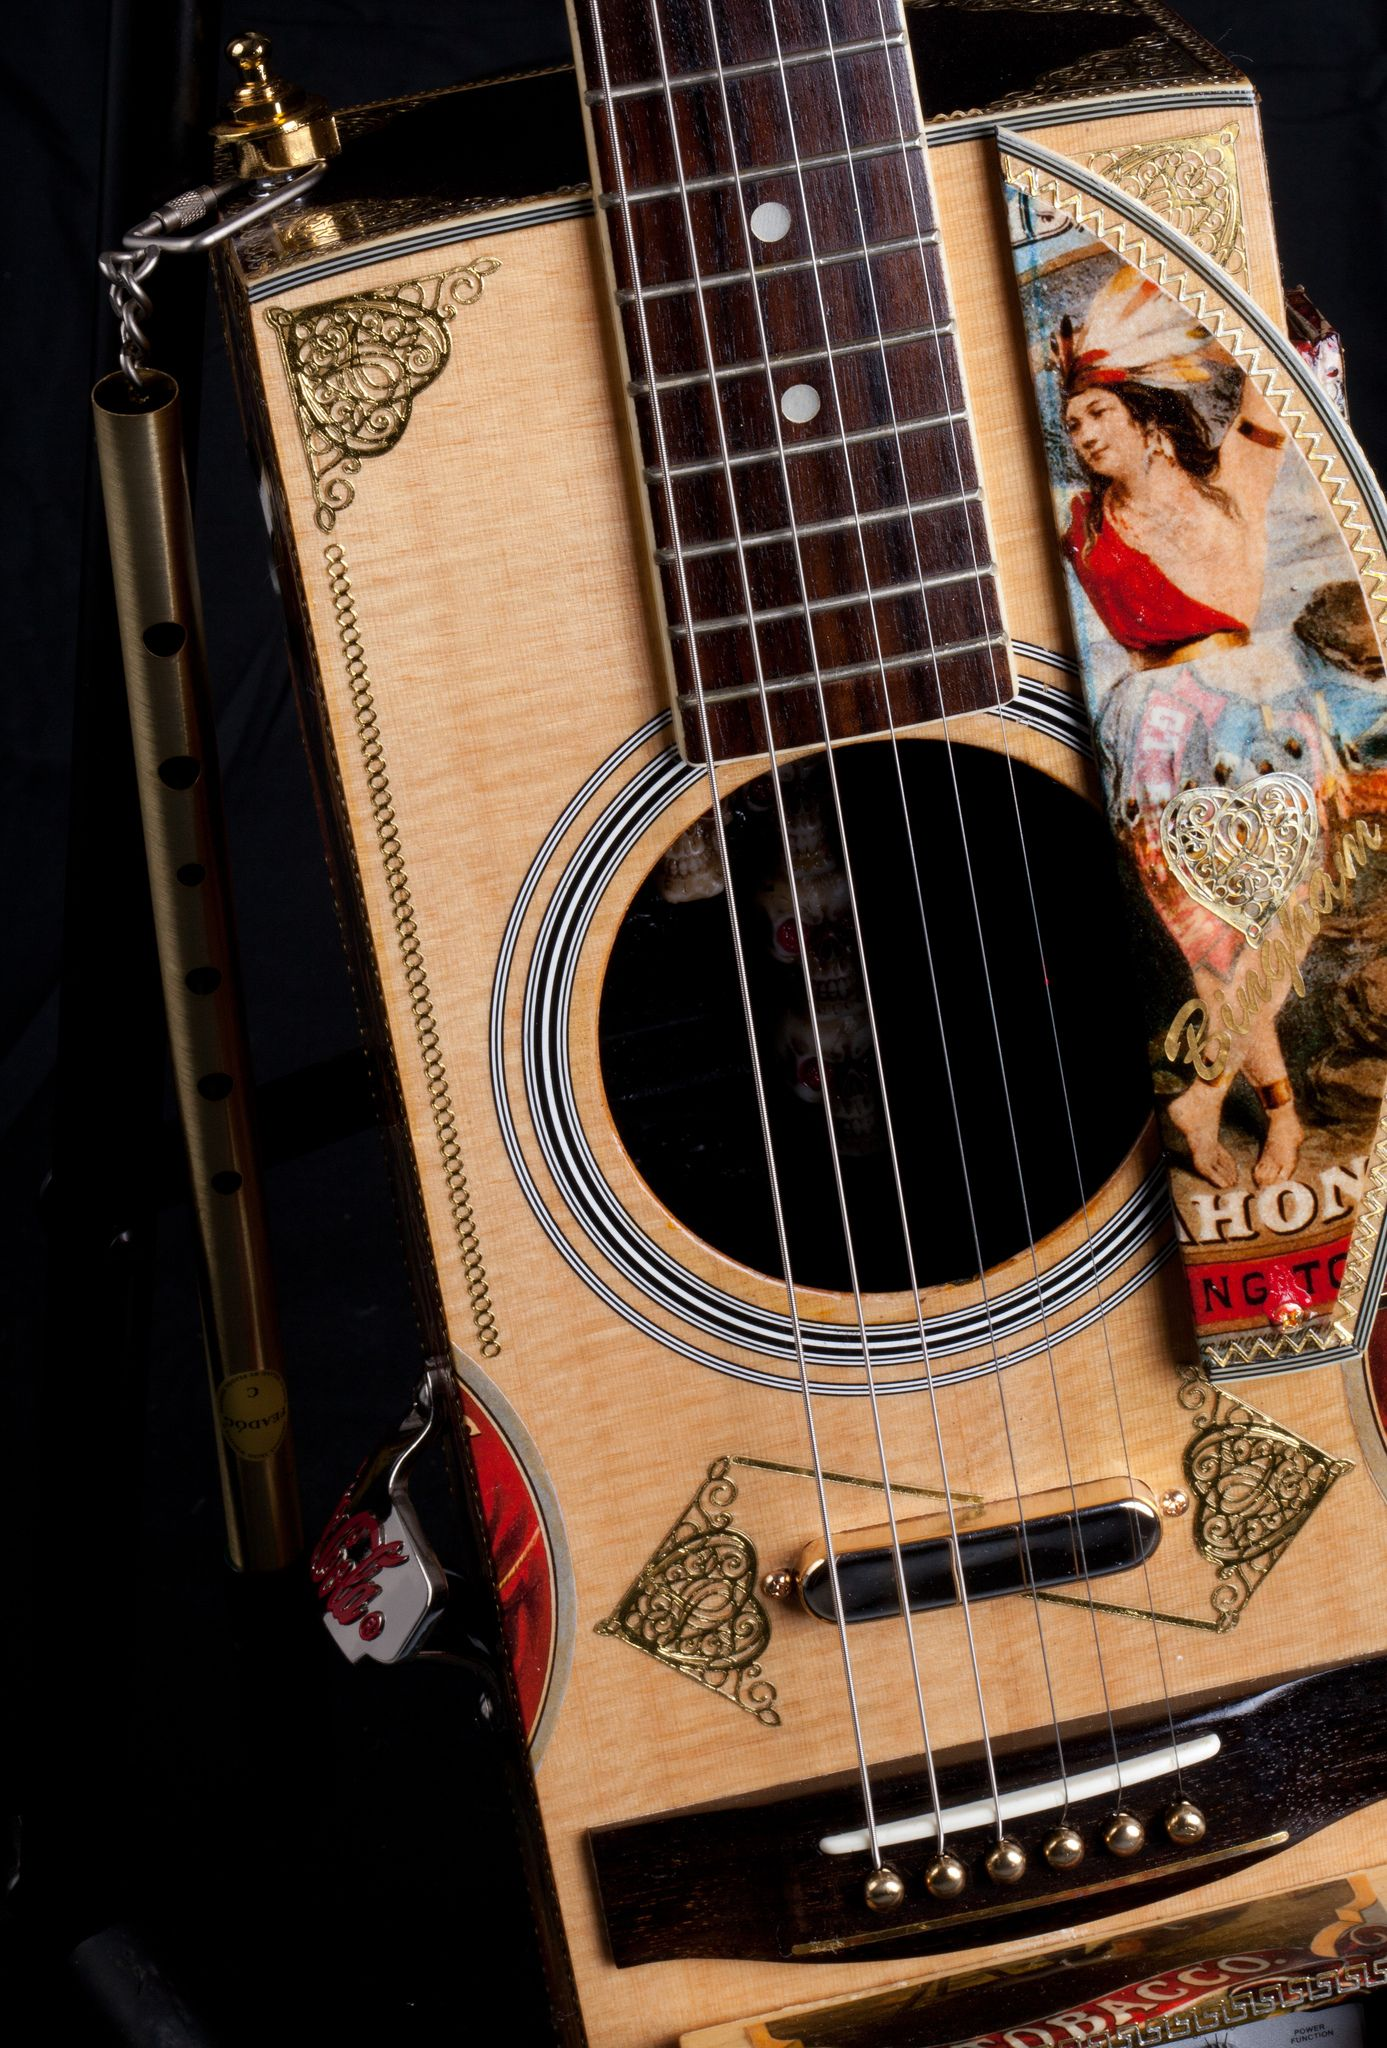 Tom Bingham S Busker Cigar Box Guitar Has A Built In Amp Powered By A 9 Volt Battery It Is A Self Contained Survival Kit Fo Cigar Box Guitar Box Guitar Guitar